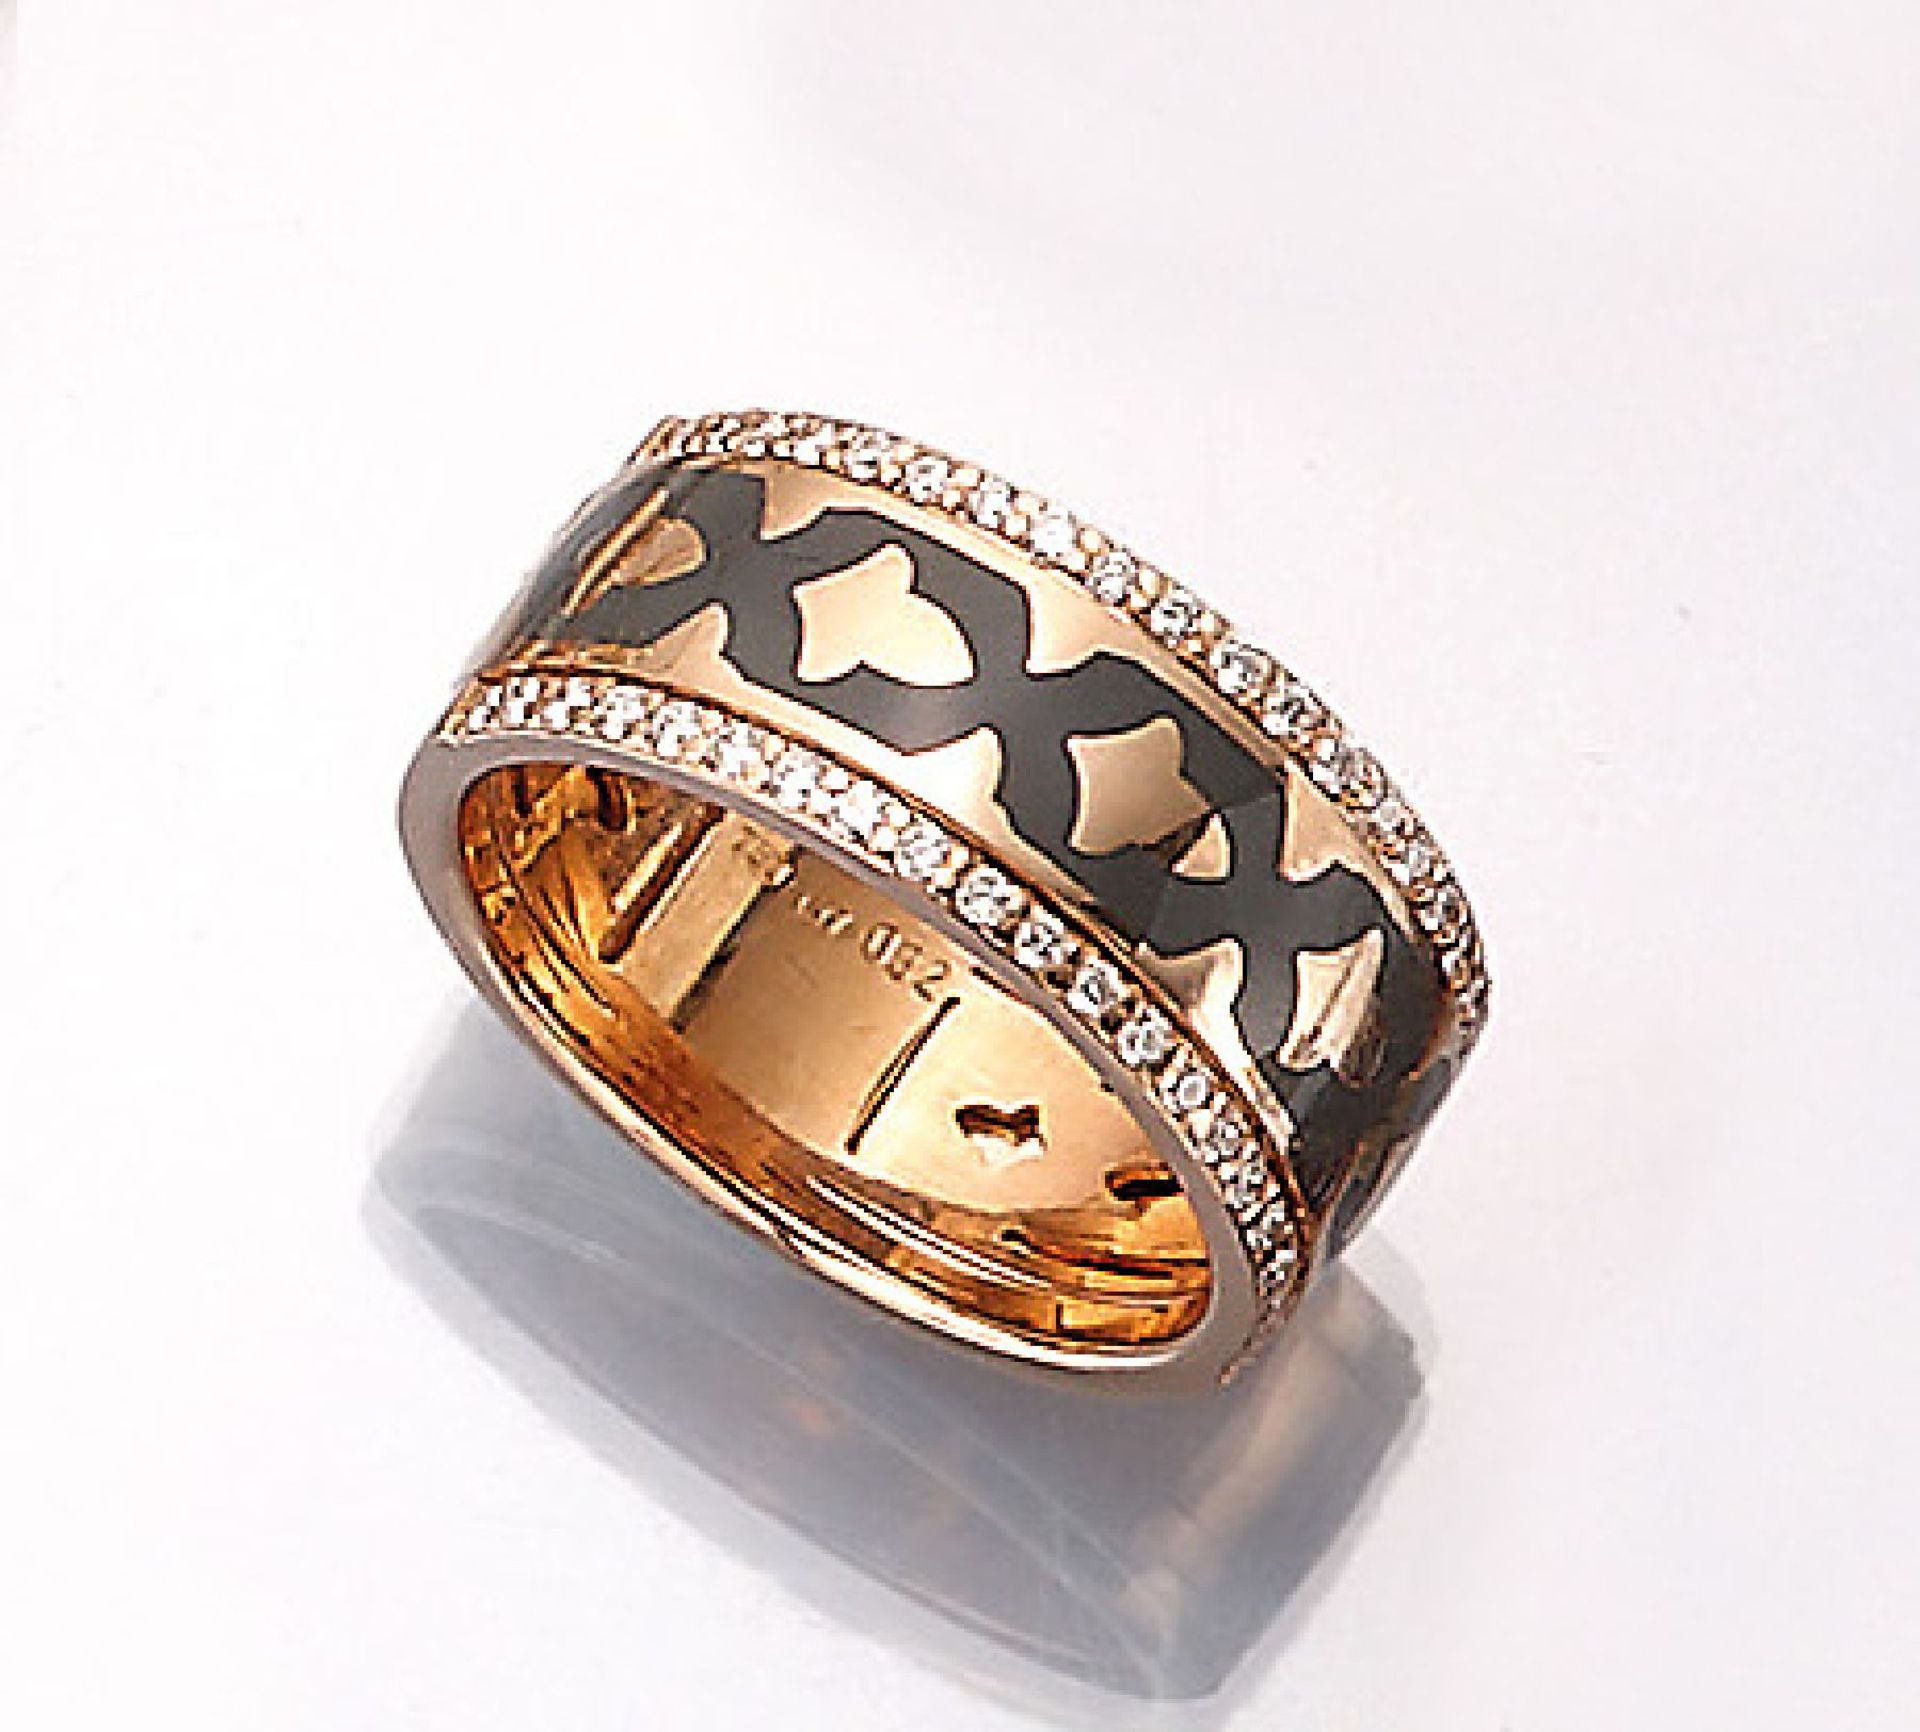 Los 61524 - LEO WITTWER 18 kt gold ring with enamel and brilliants , RoseG 750/000, grey enameled, brilliants